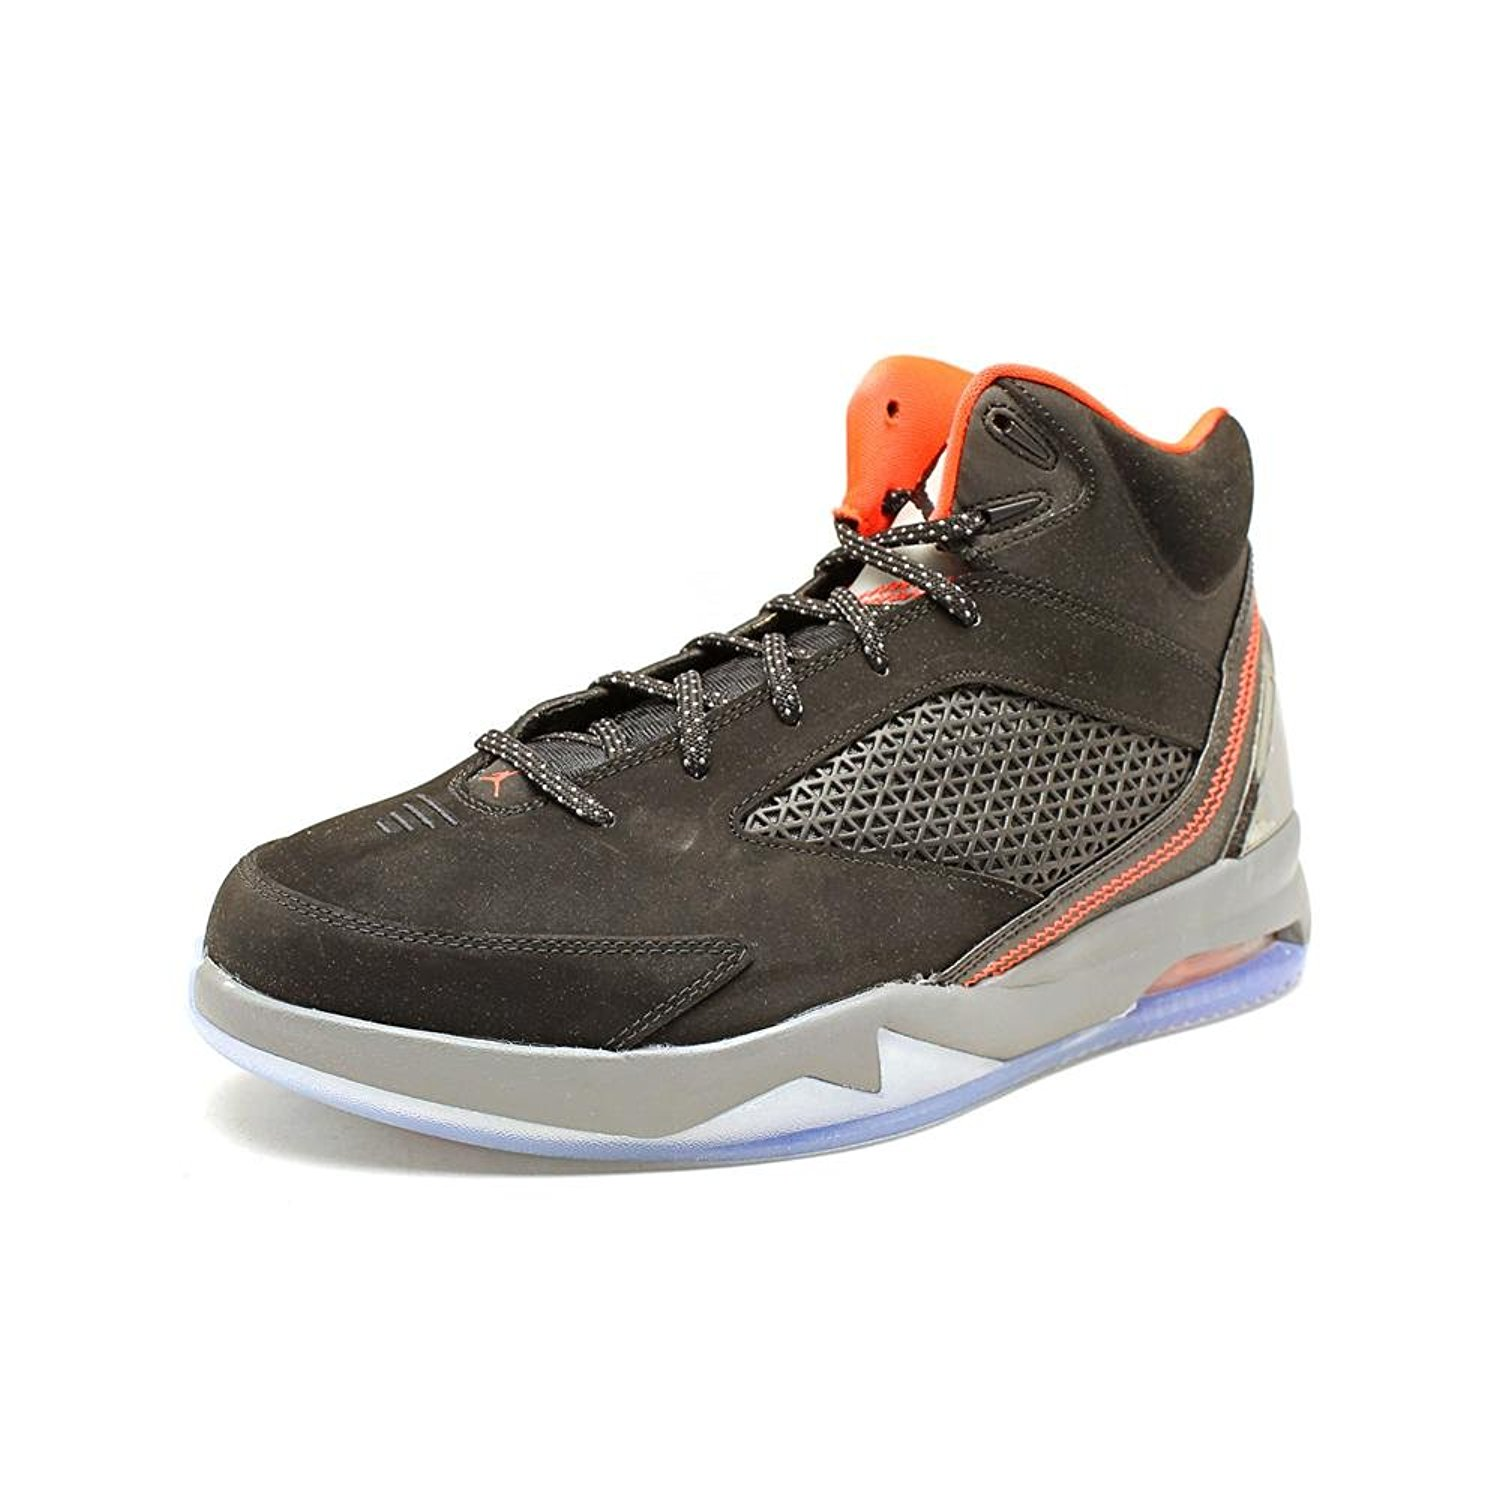 fb2fe4cc05fb Get Quotations ·  679680-020  AIR JORDAN FLIGHT REMIX MENS SNEAKERS AIR  JORDANBLACK INFRARED 23